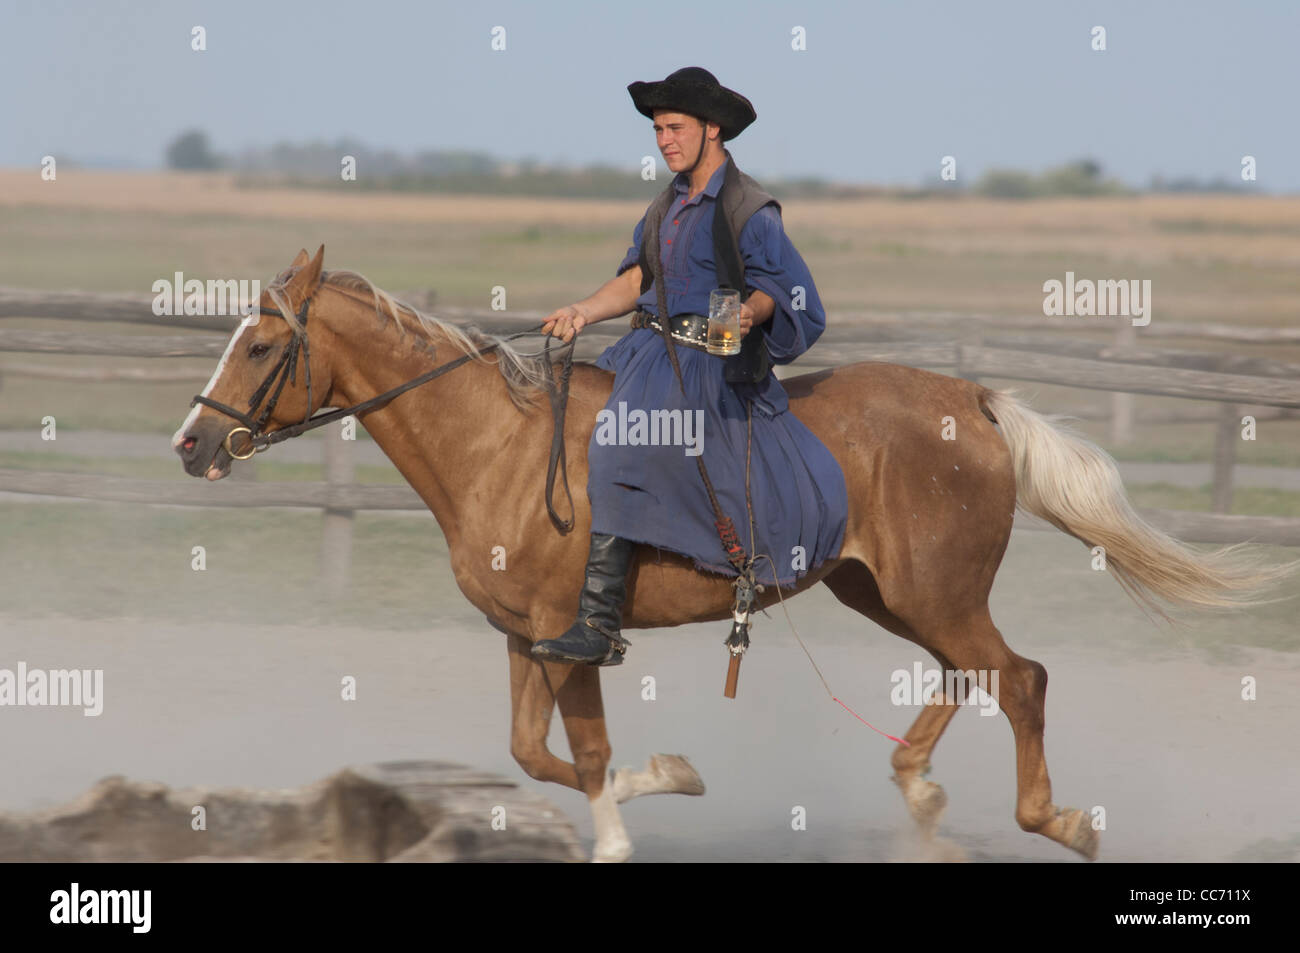 Hungary, Kalocsa. Traditional Hungarian ranch & cowboy show. Typical cowboy with beer mug on palomino horse. Stock Photo